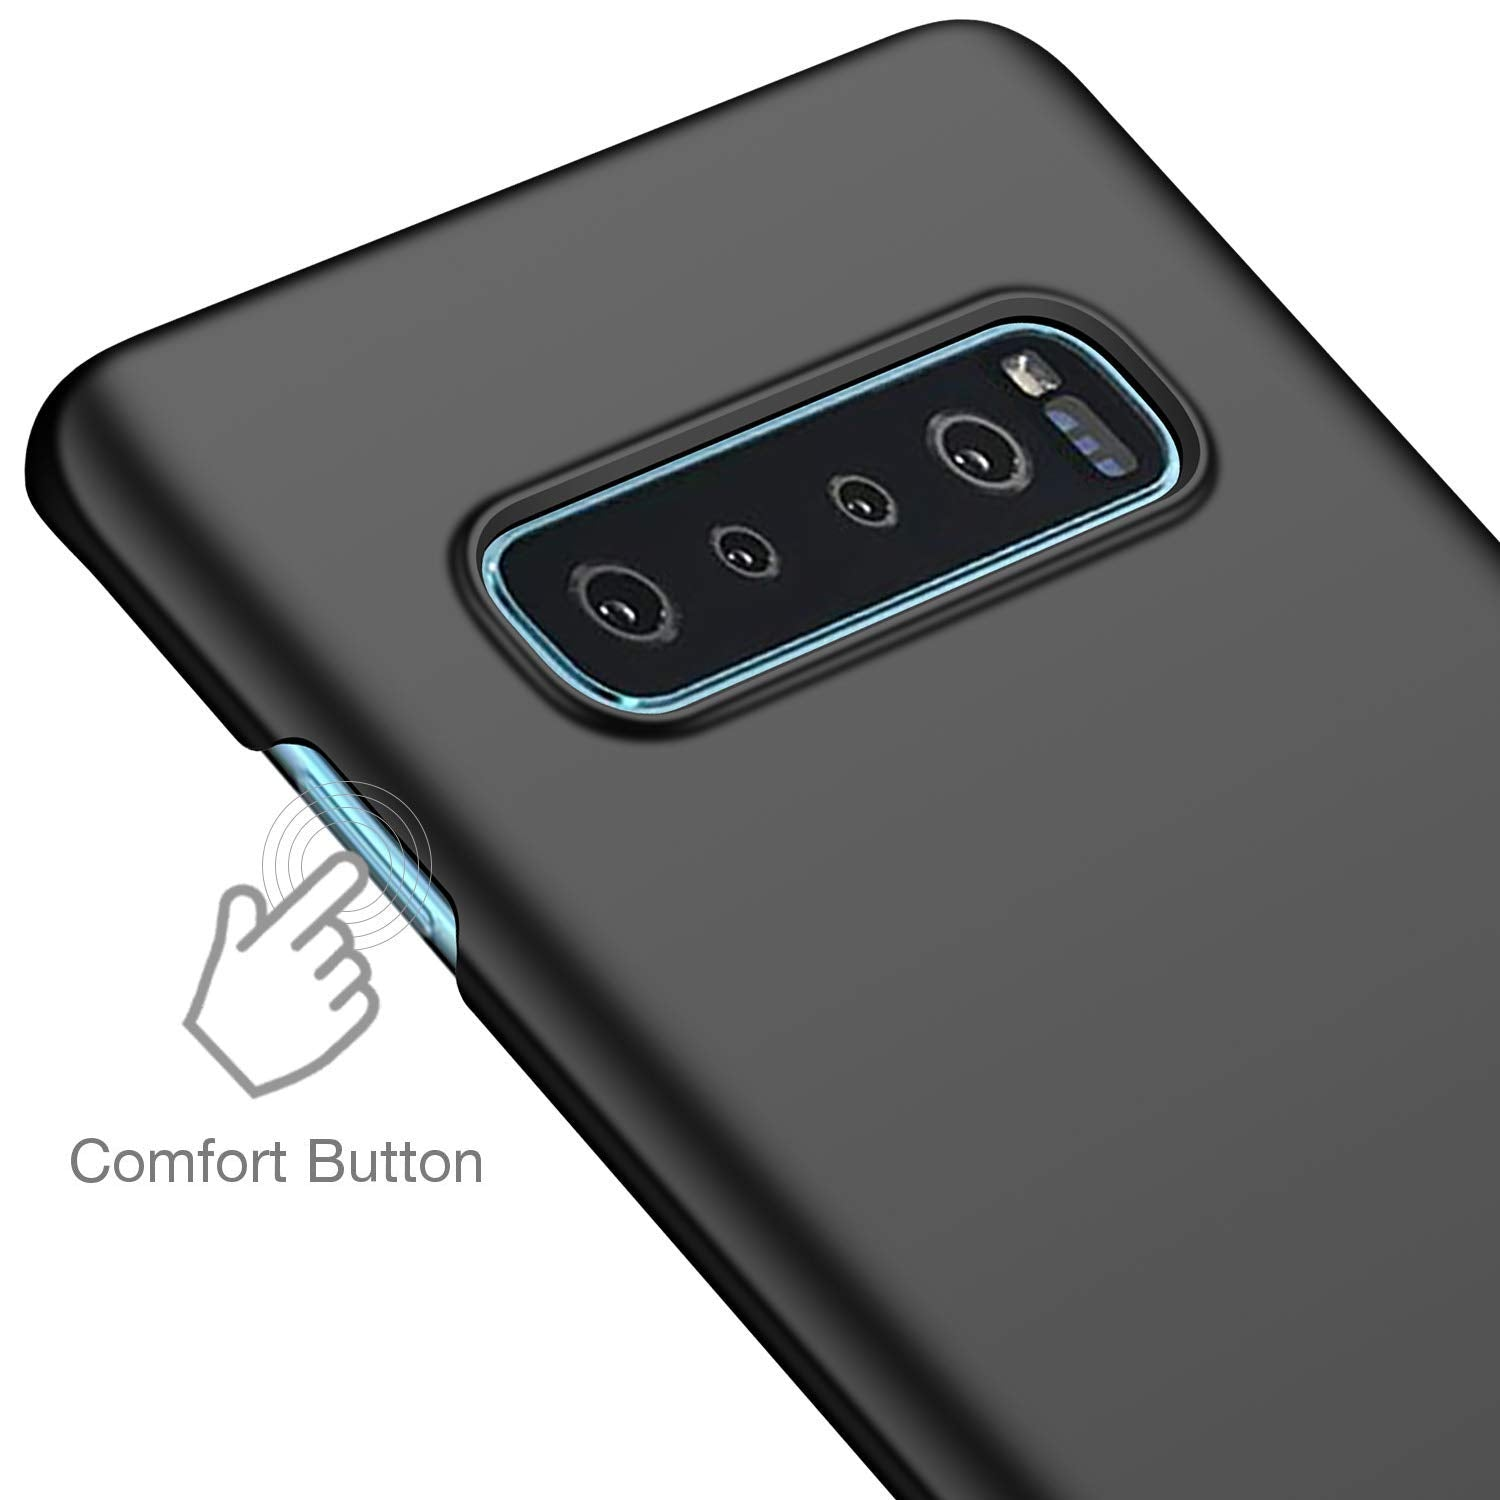 Silk Smooth Finish [Full Coverage] All Sides Protection Slim Back Case Cover For Samsung Galaxy S10 PLUS - Black - Mobizang